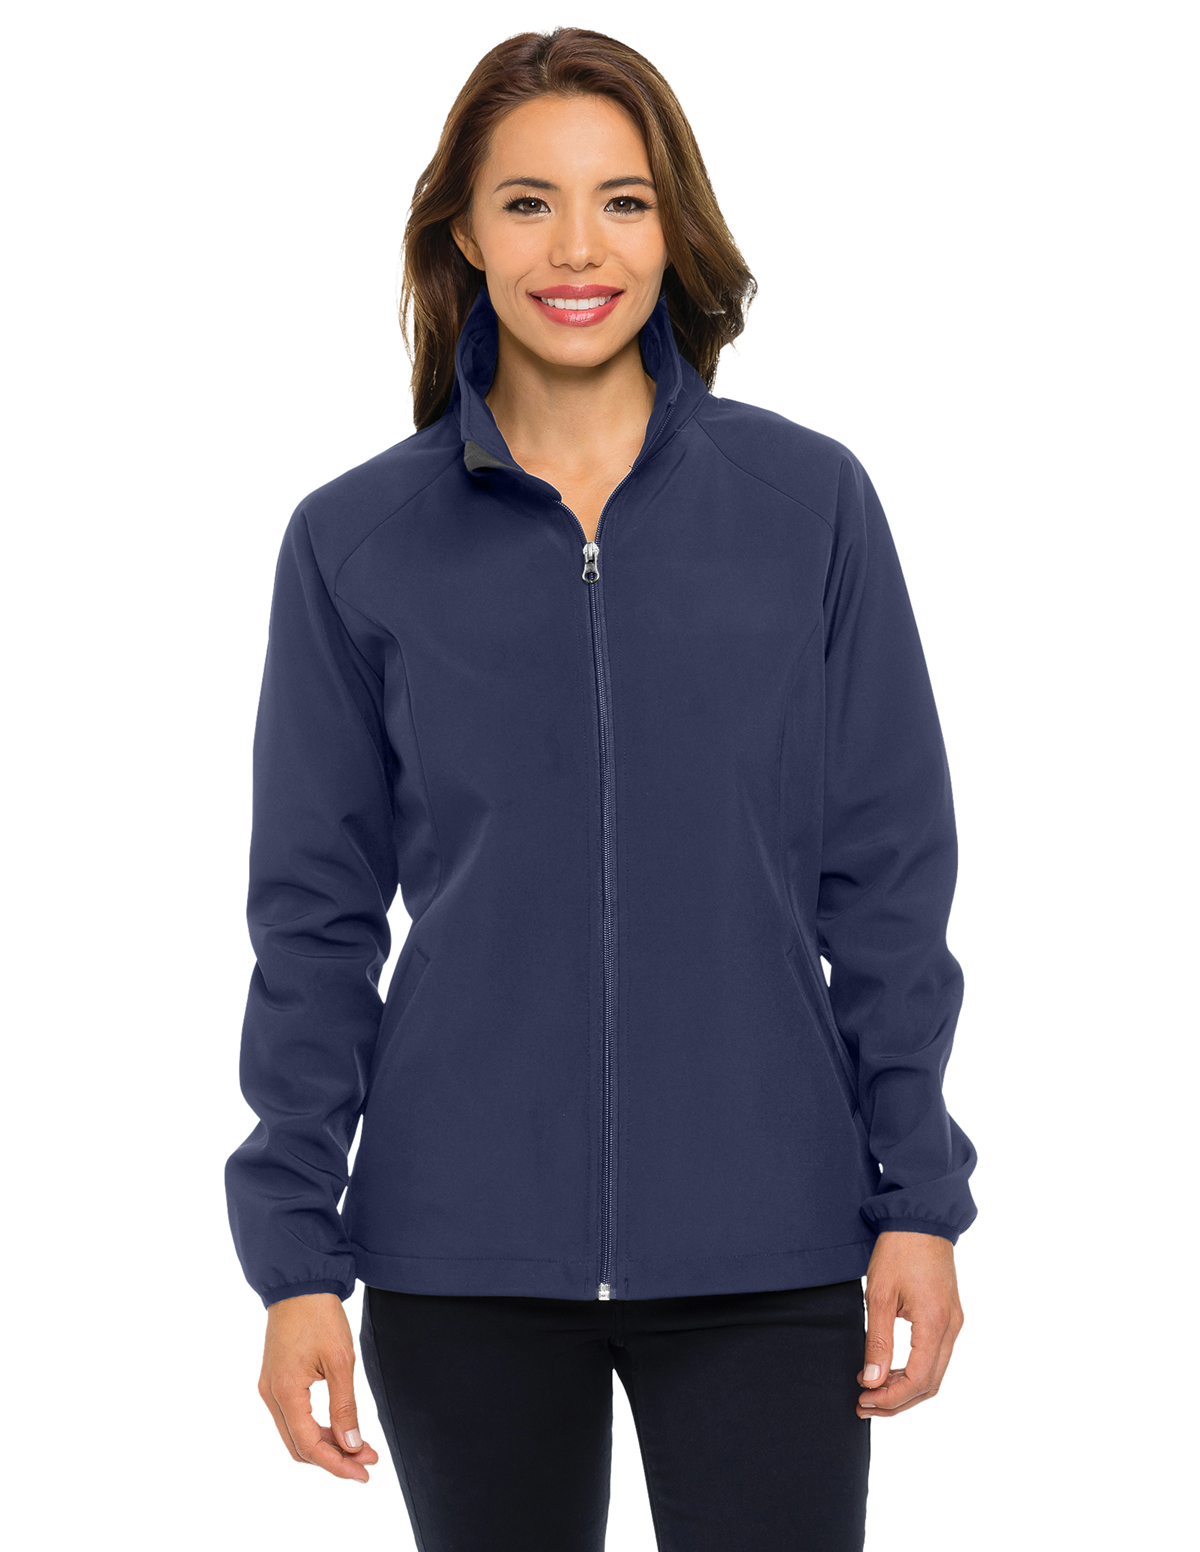 Tri-Mountain Performance JL6350 - Lady Vital Bonded Soft Shell Jacket